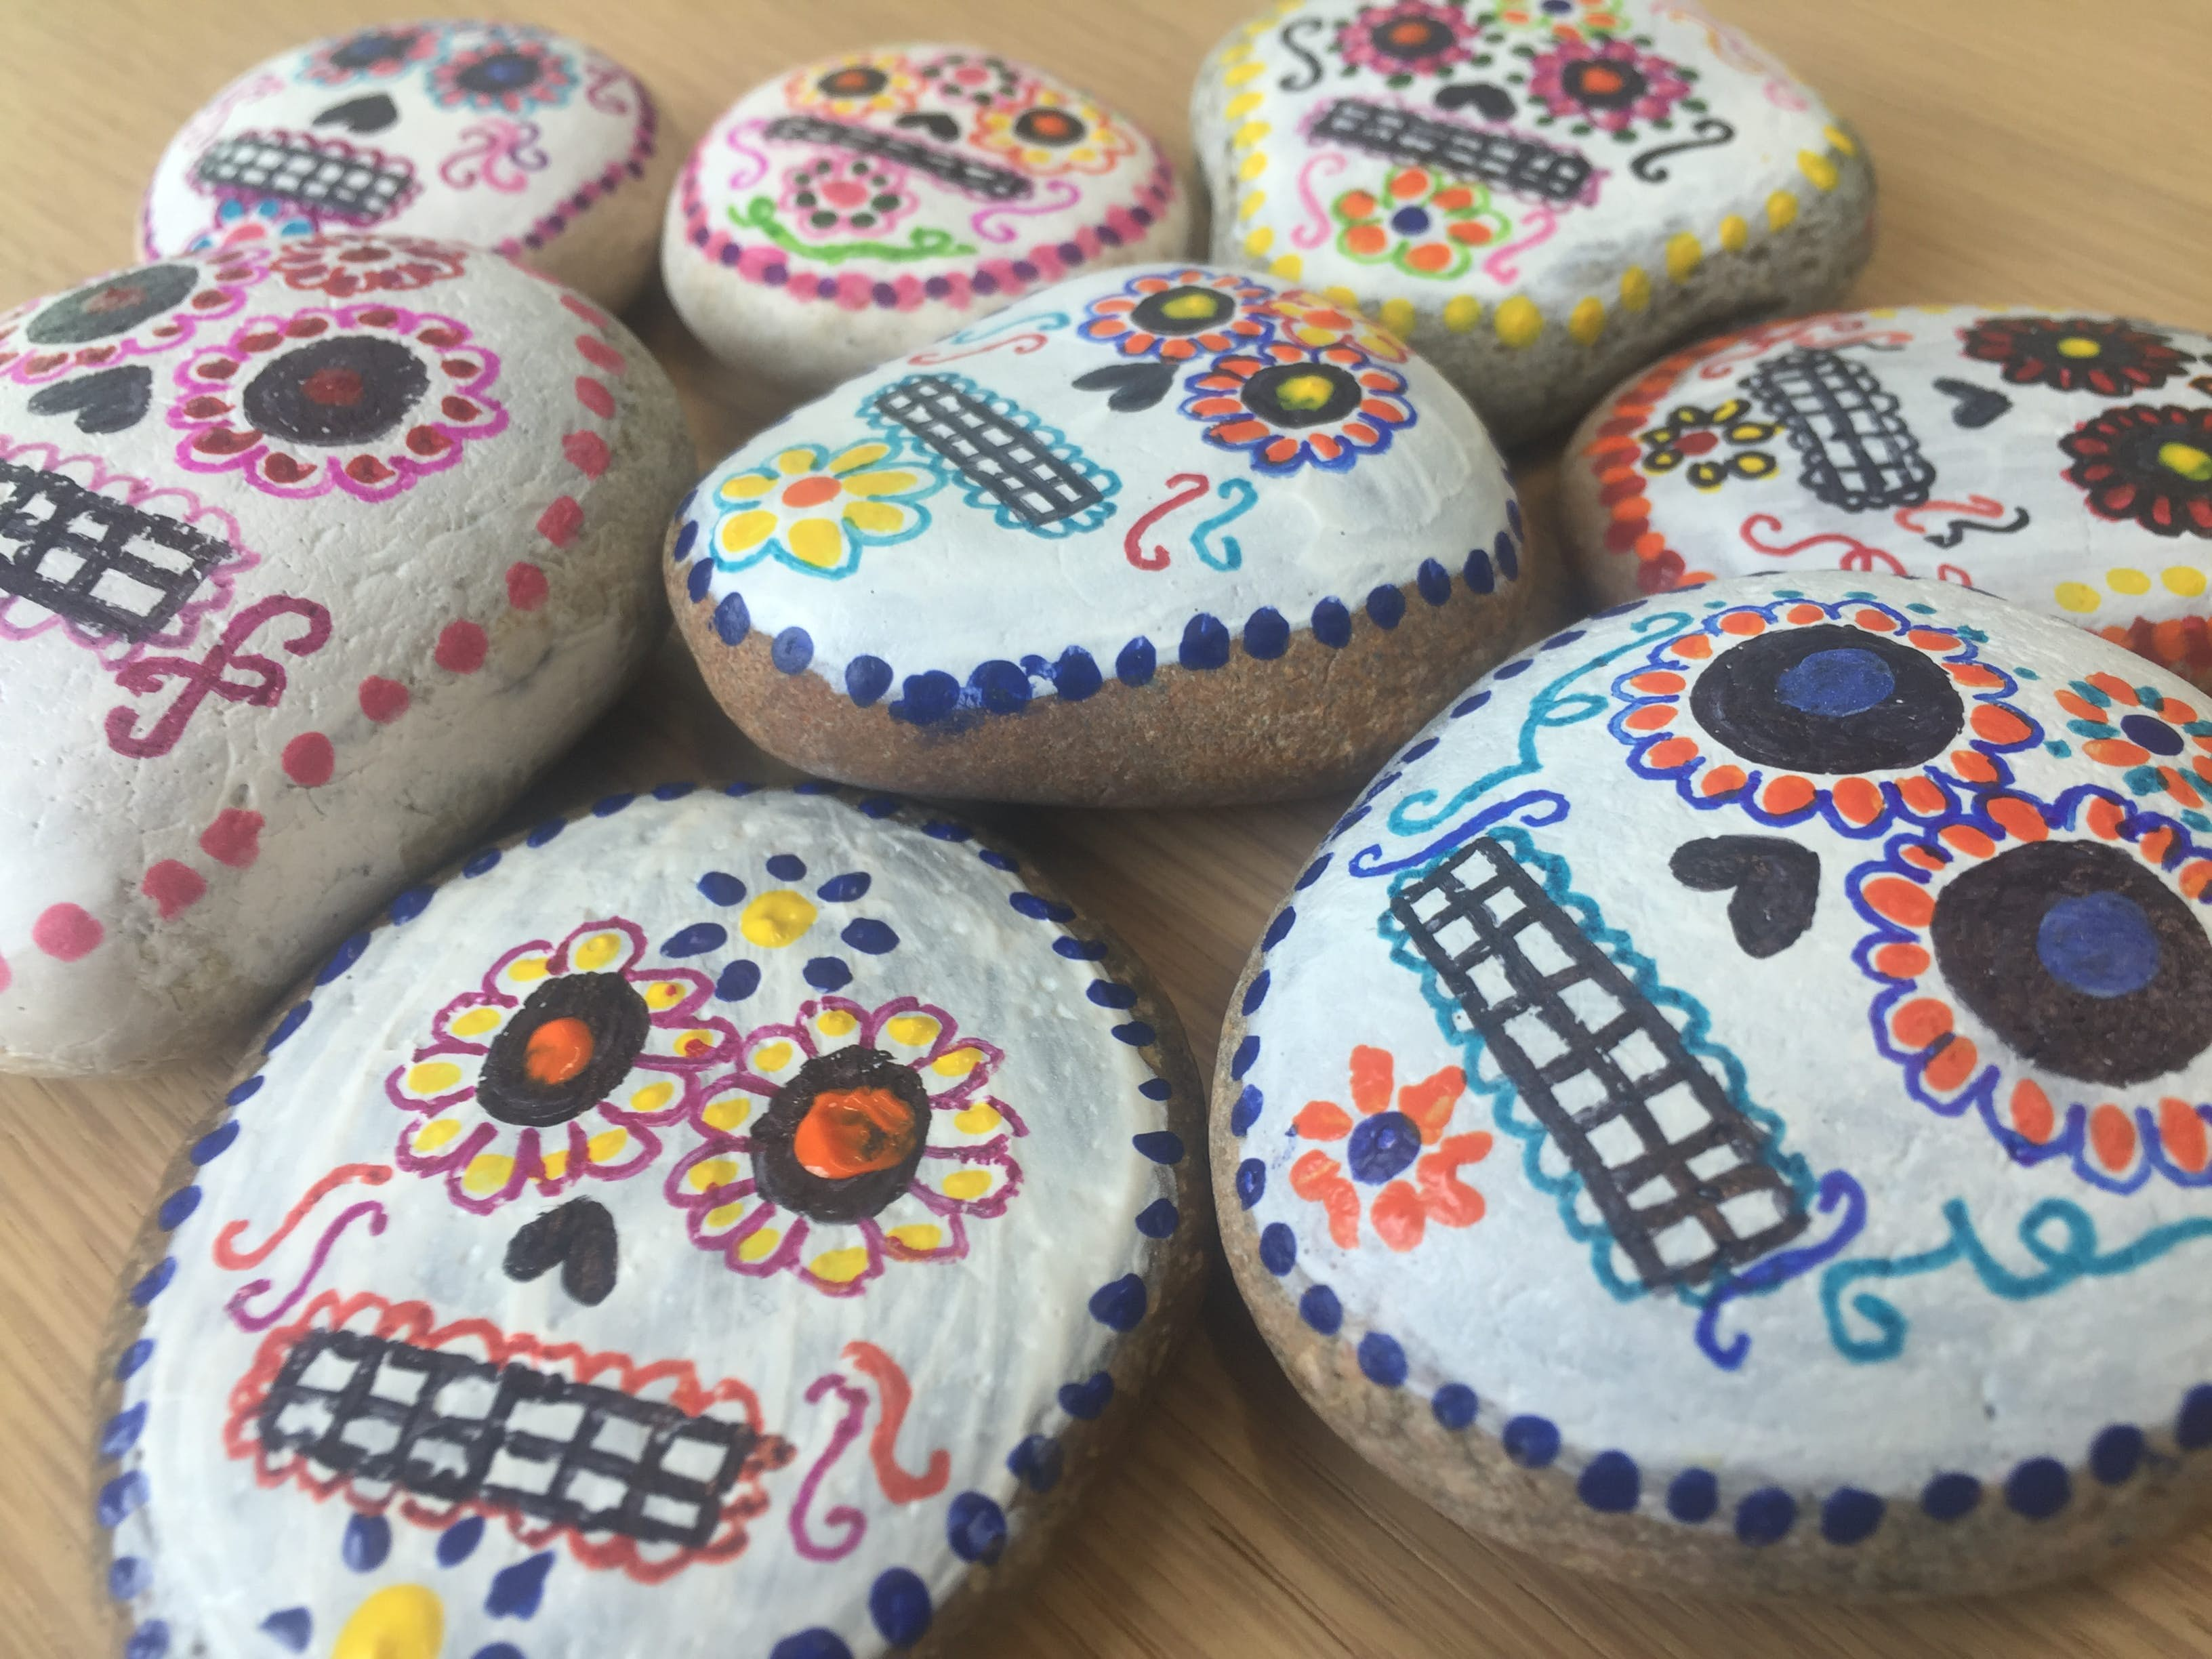 Rainy Day Activity Painting Pebbles For Mexico S Day Of The Dead Lonely Planet